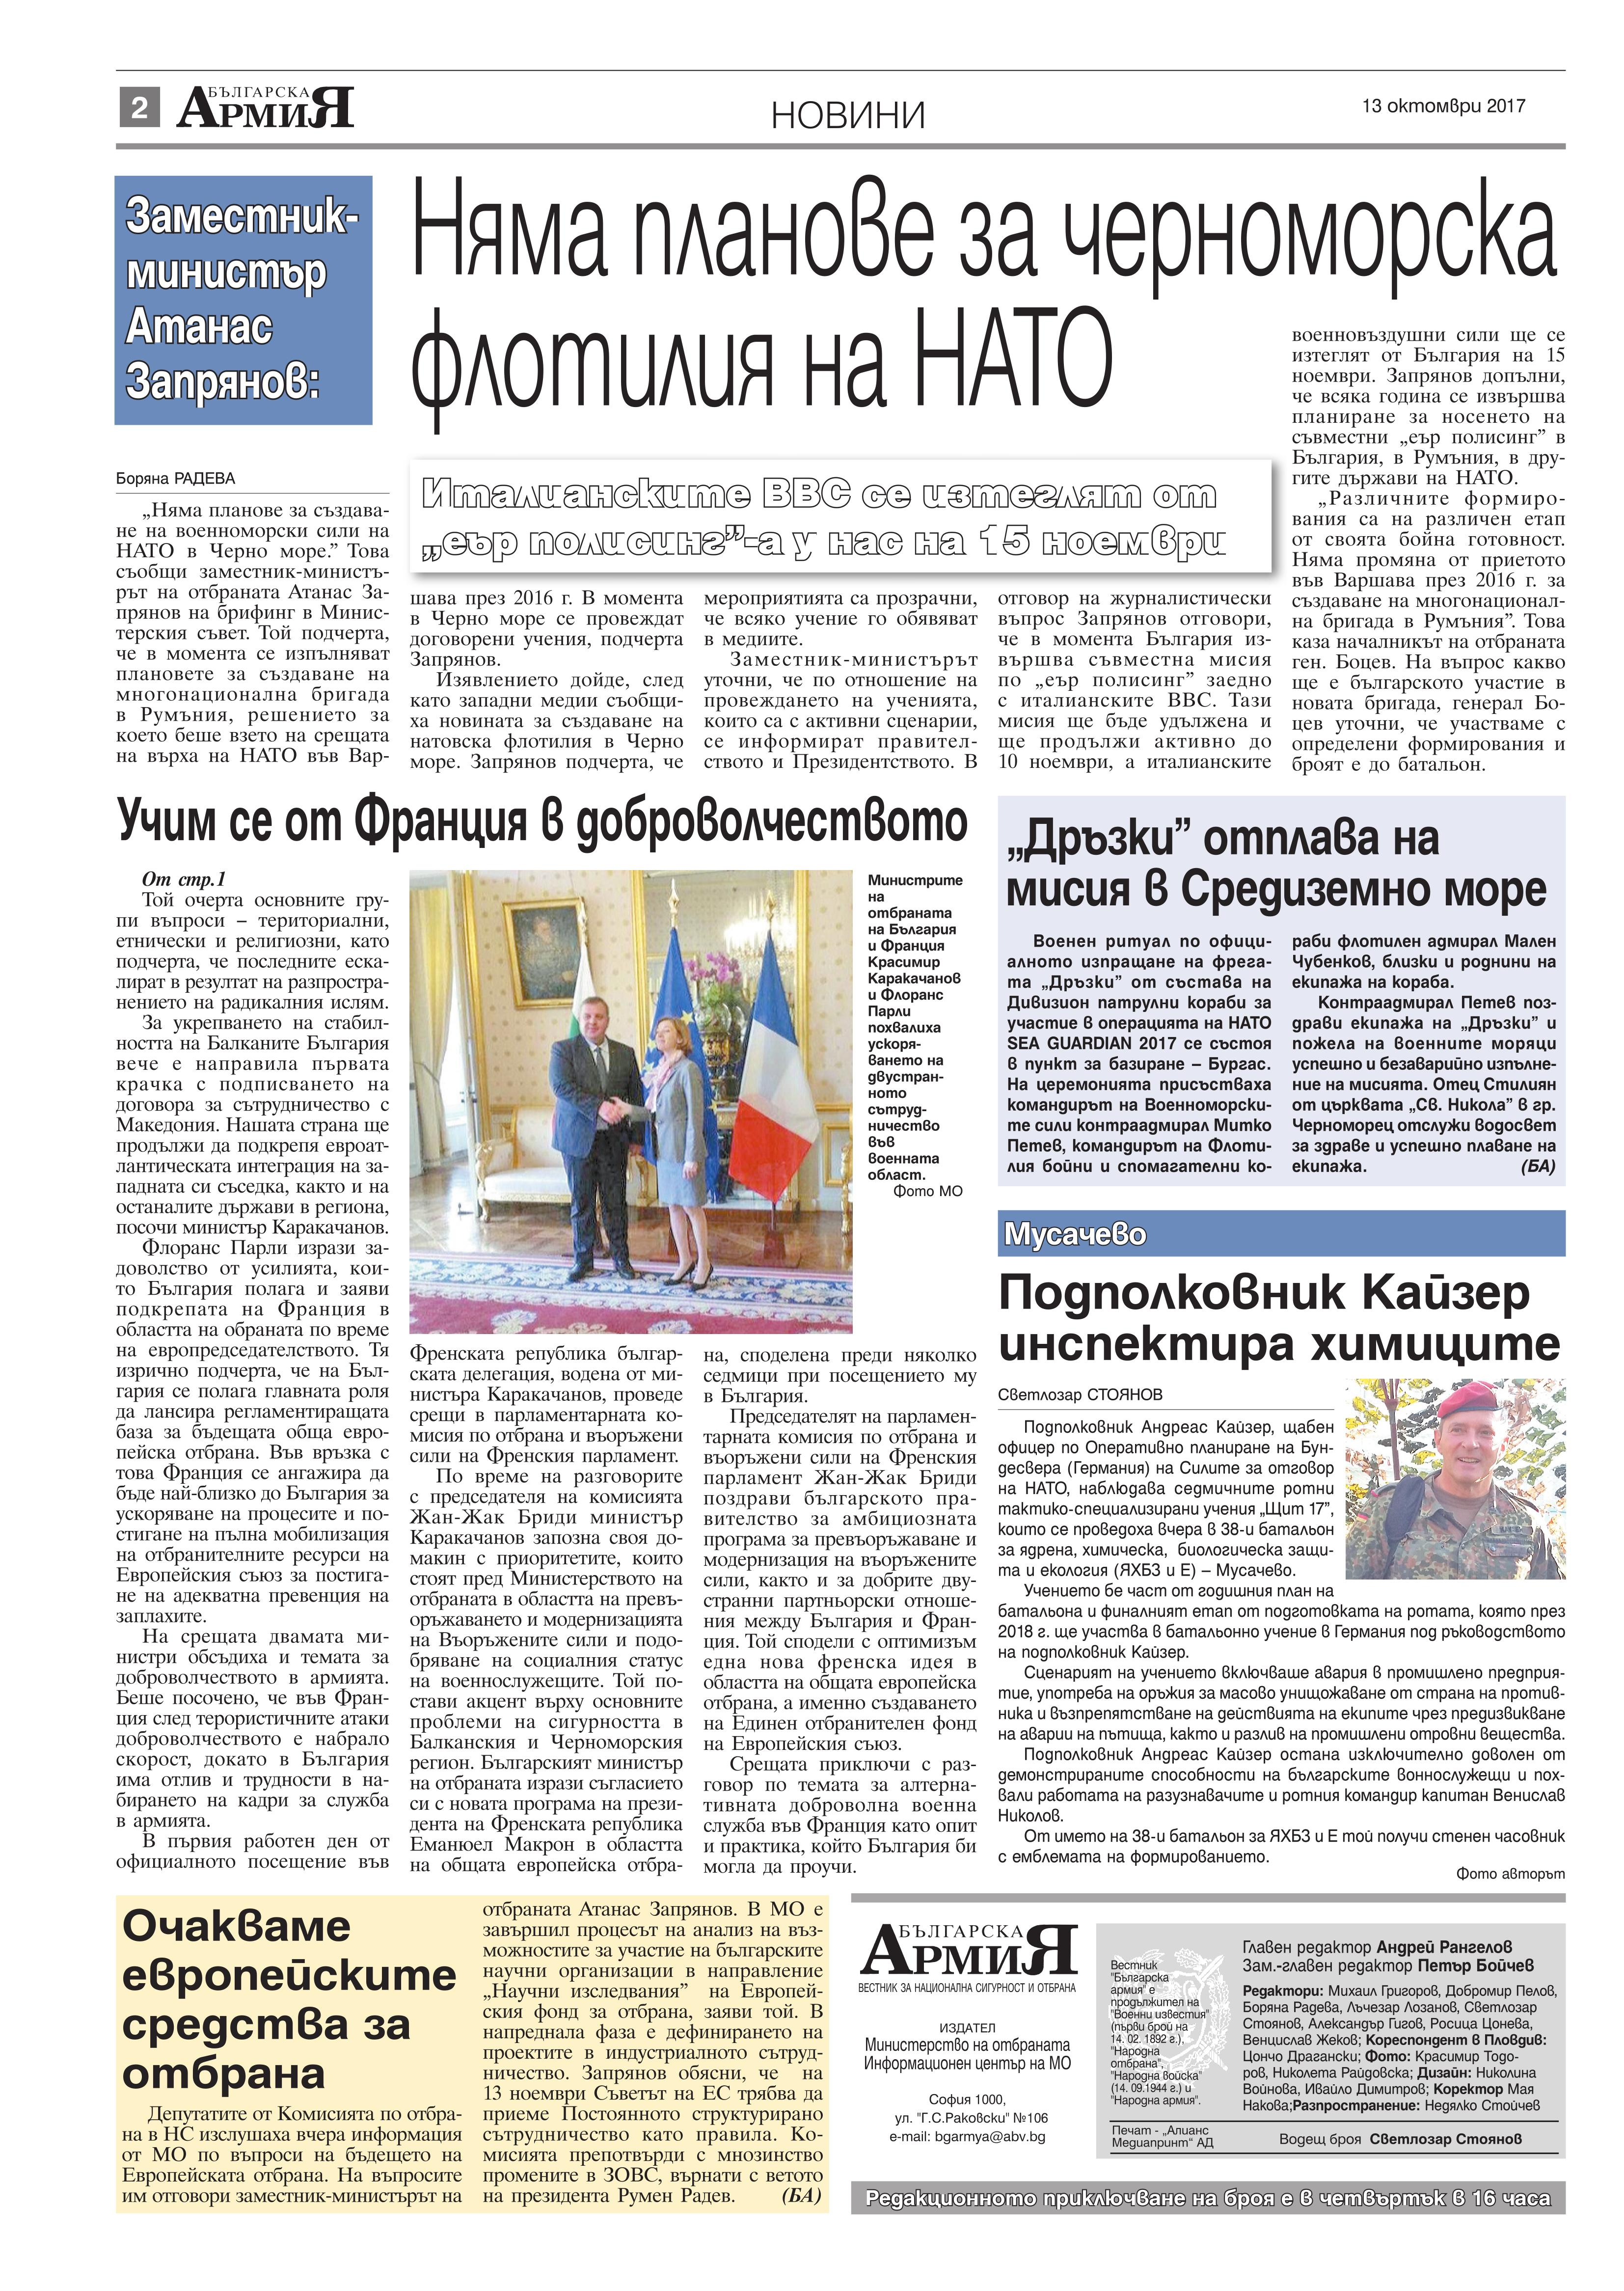 http://armymedia.bg/wp-content/uploads/2015/06/02.page1_-32.jpg